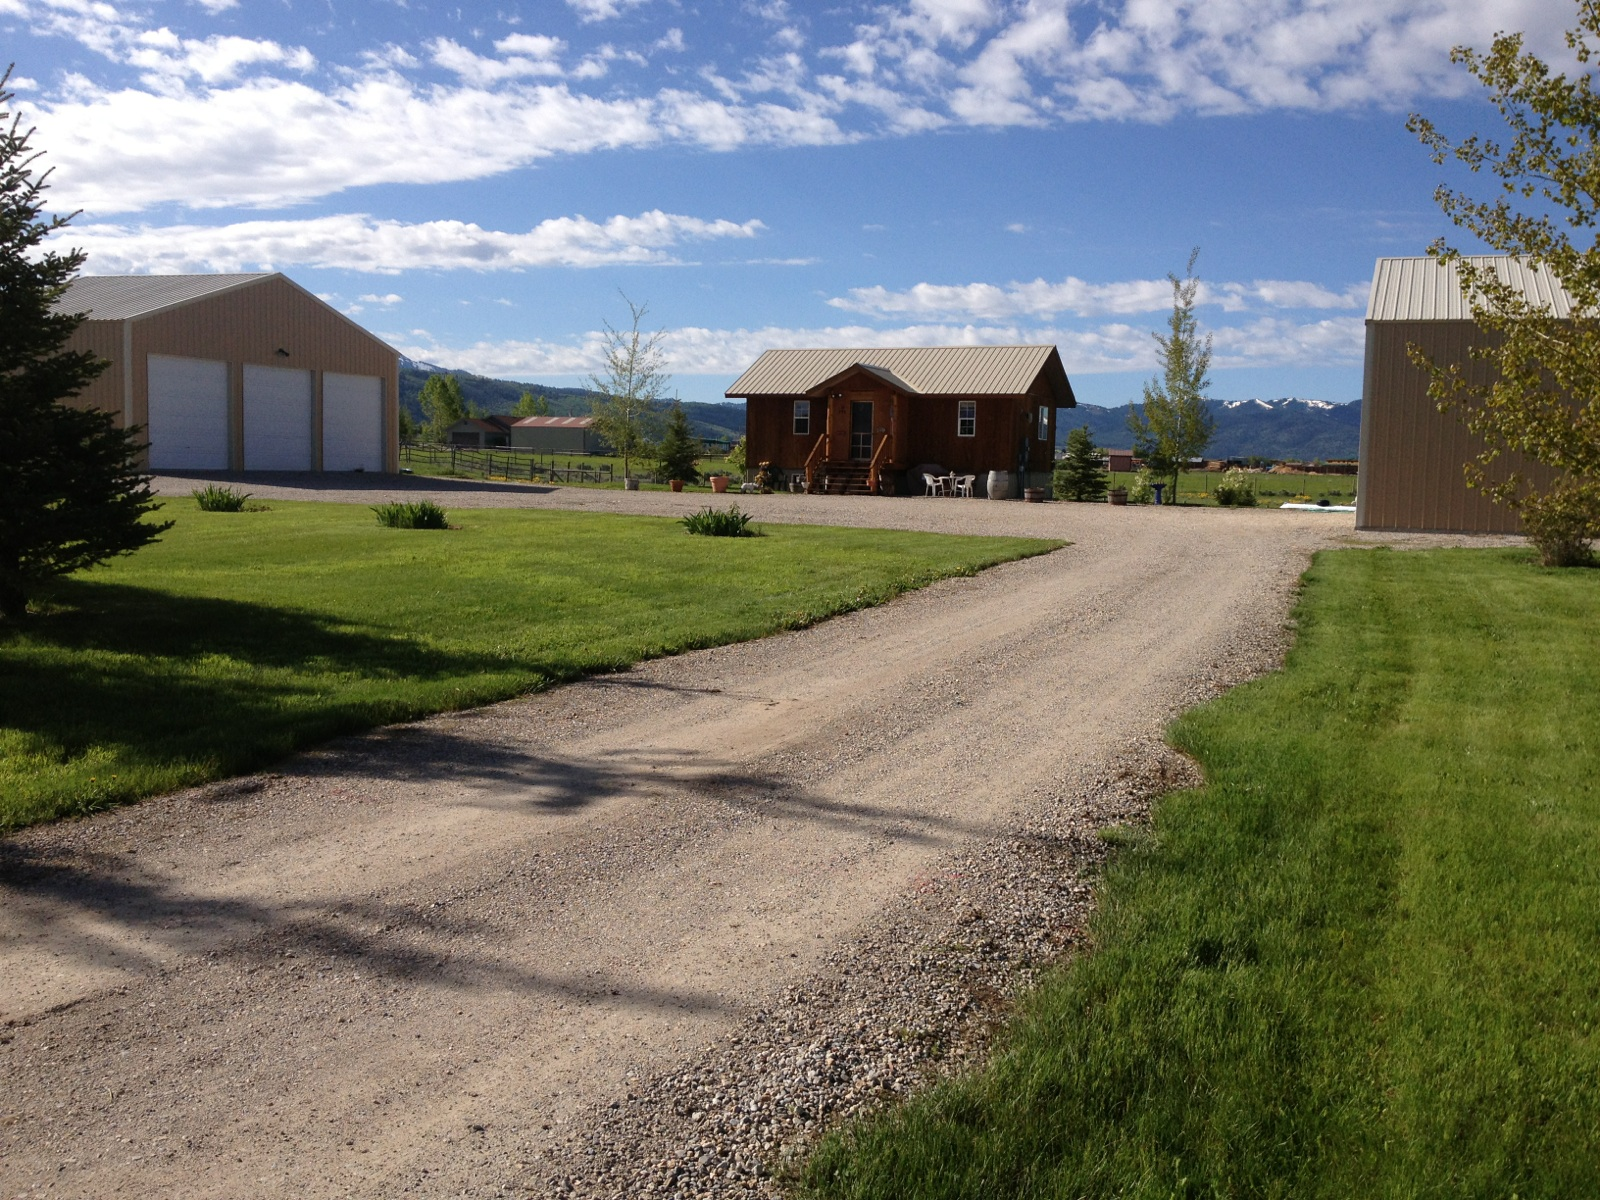 Single Family Home for Sale at Victor Home with 6 Garage Bays, No CCR's 593 JACKALOPE WAY Victor, Idaho, 83455 Jackson Hole, United States